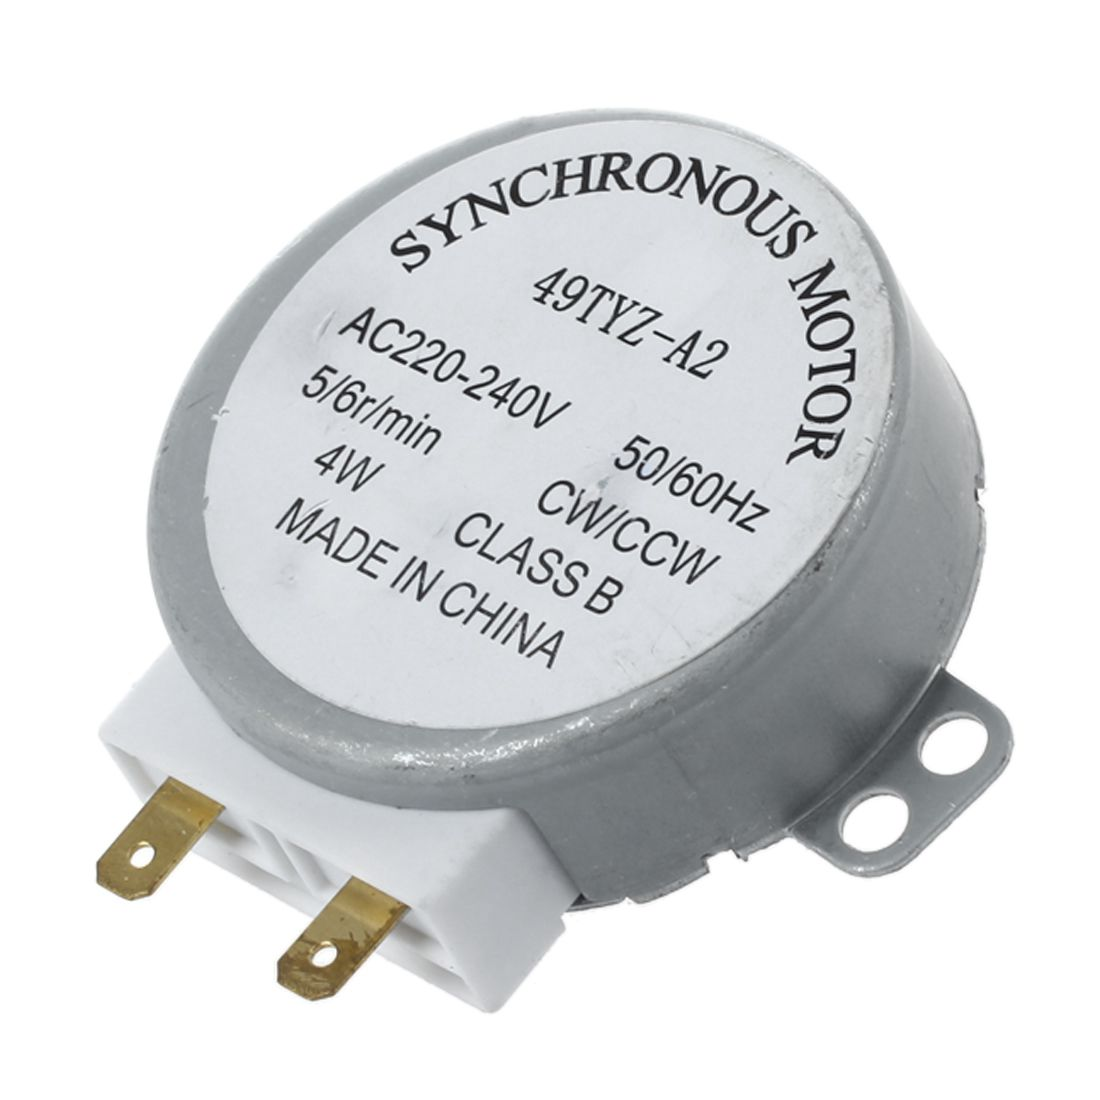 AC 220-240V 50/60Hz 5/6RPM 4W Turntable Synchronous Motor for miniwave Oven Microwave oven accessoriesAC 220-240V 50/60Hz 5/6RPM 4W Turntable Synchronous Motor for miniwave Oven Microwave oven accessories